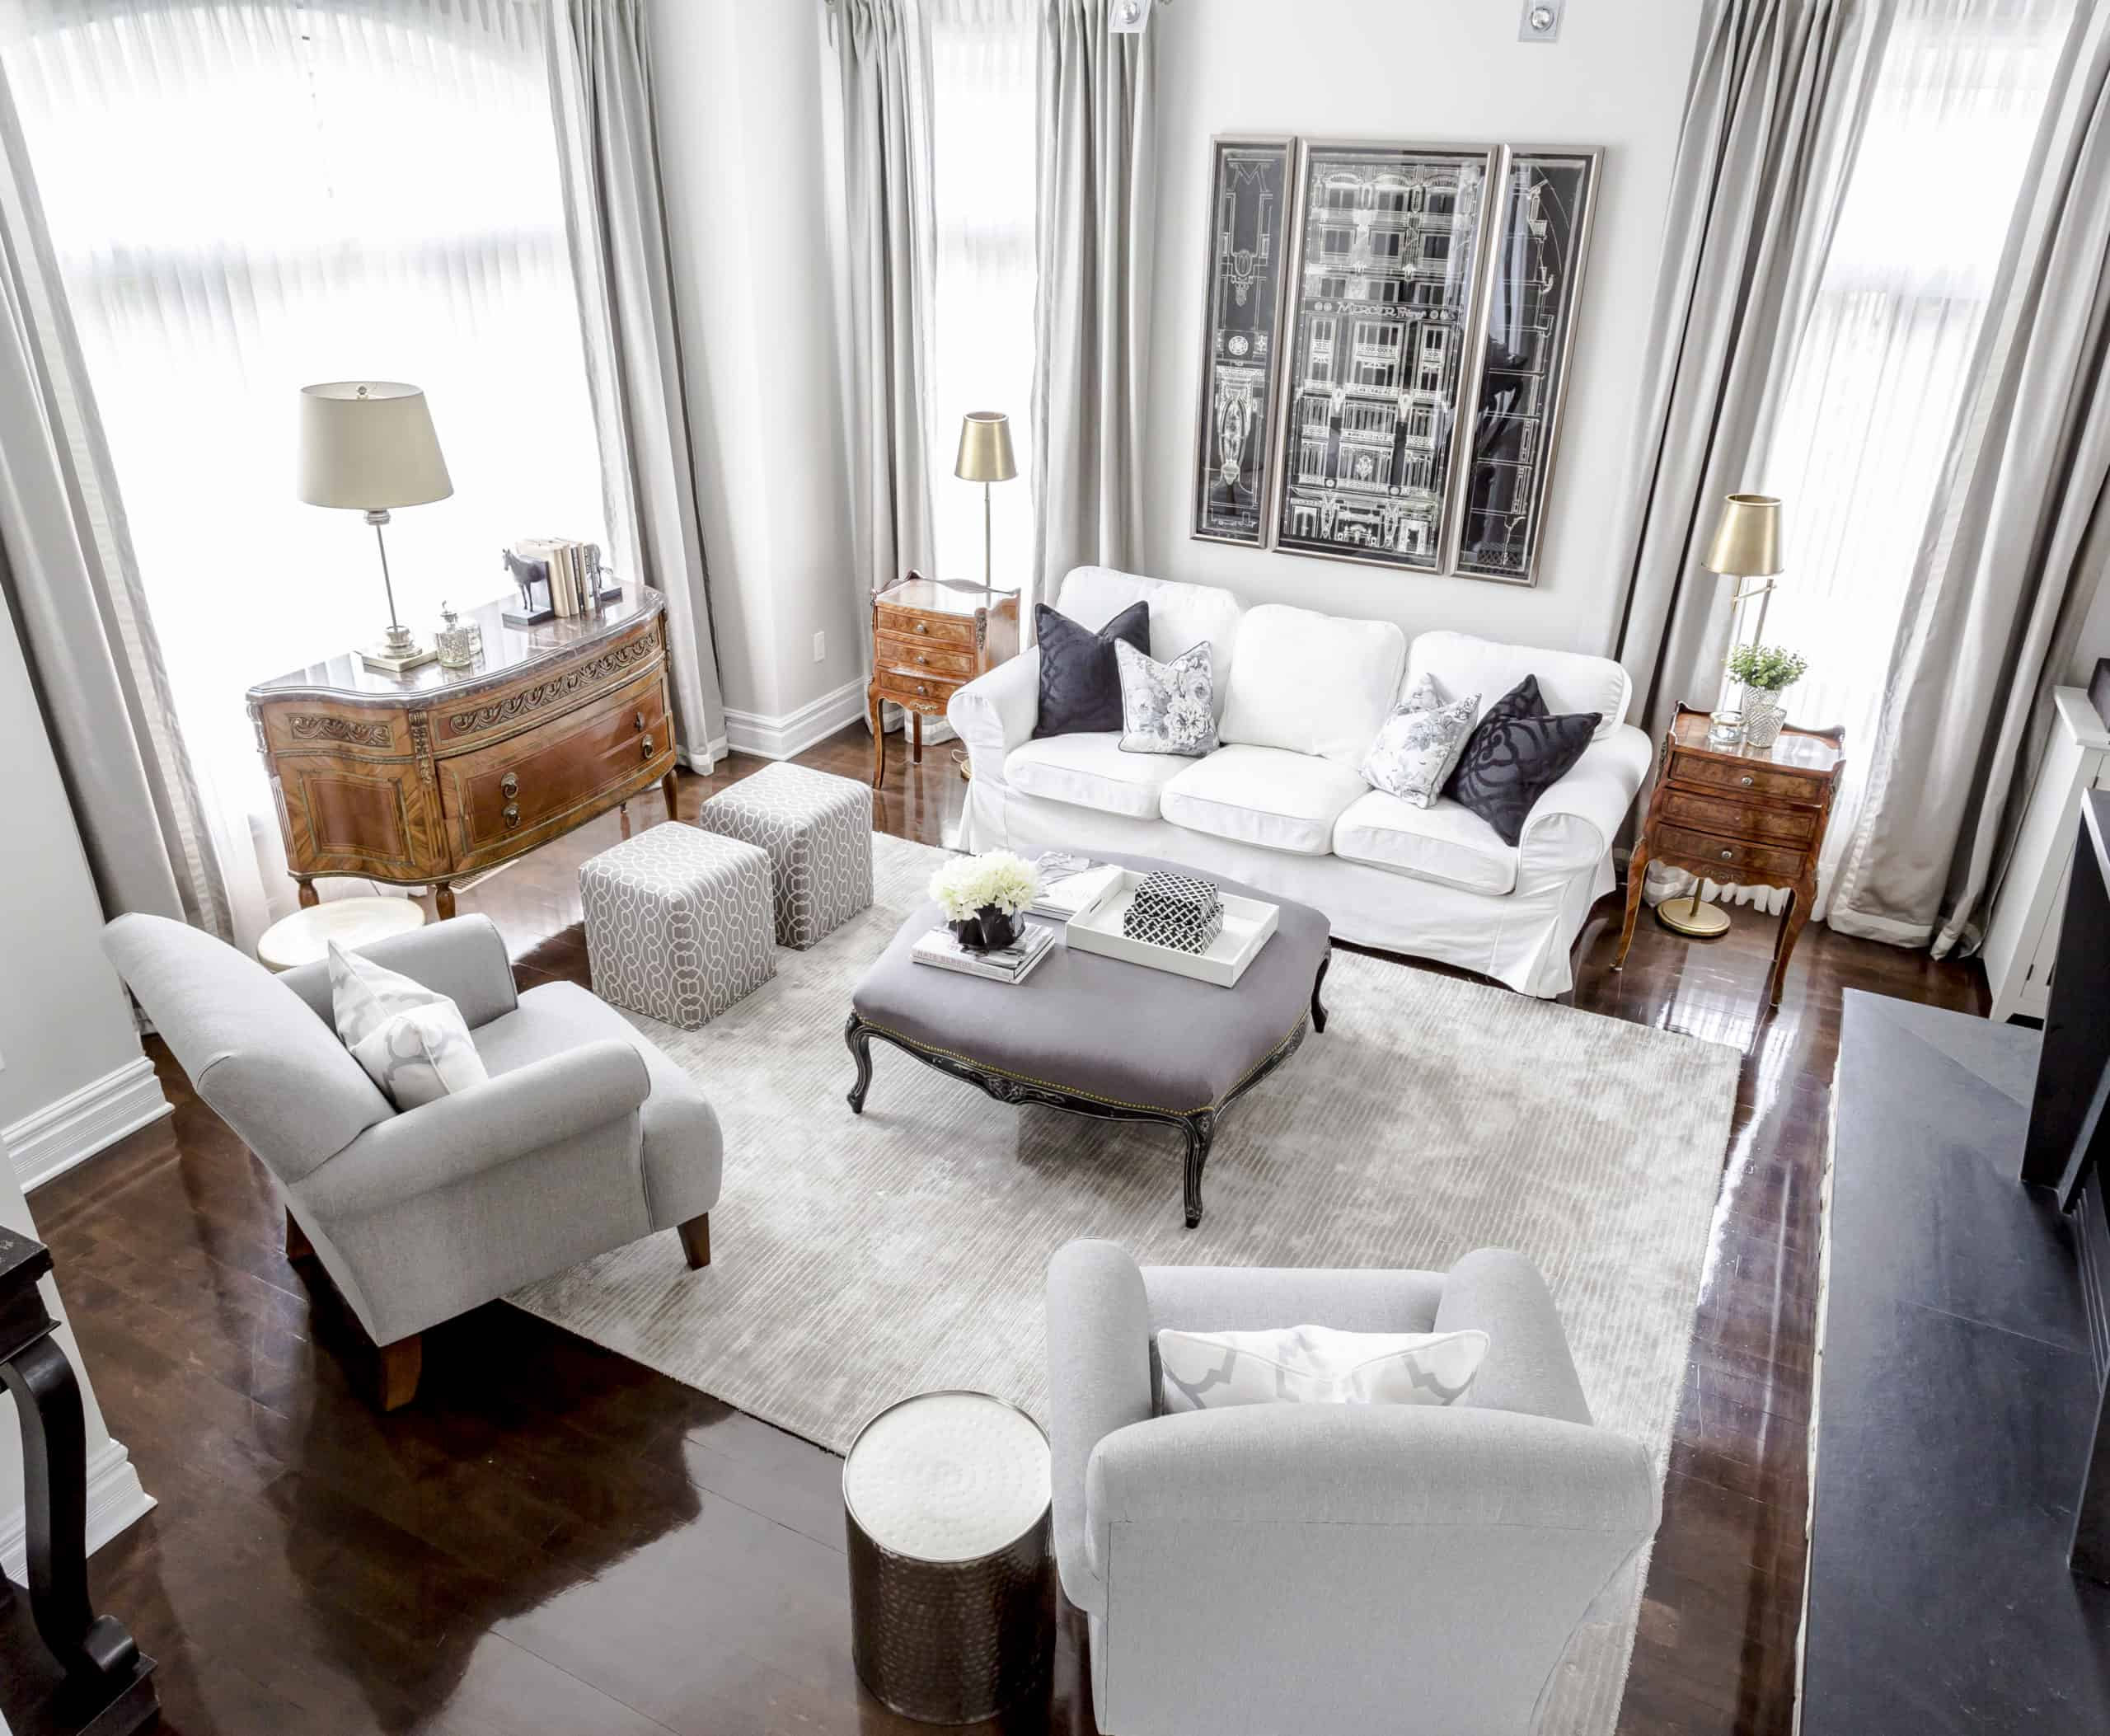 Modern living room with a white carpet and couch